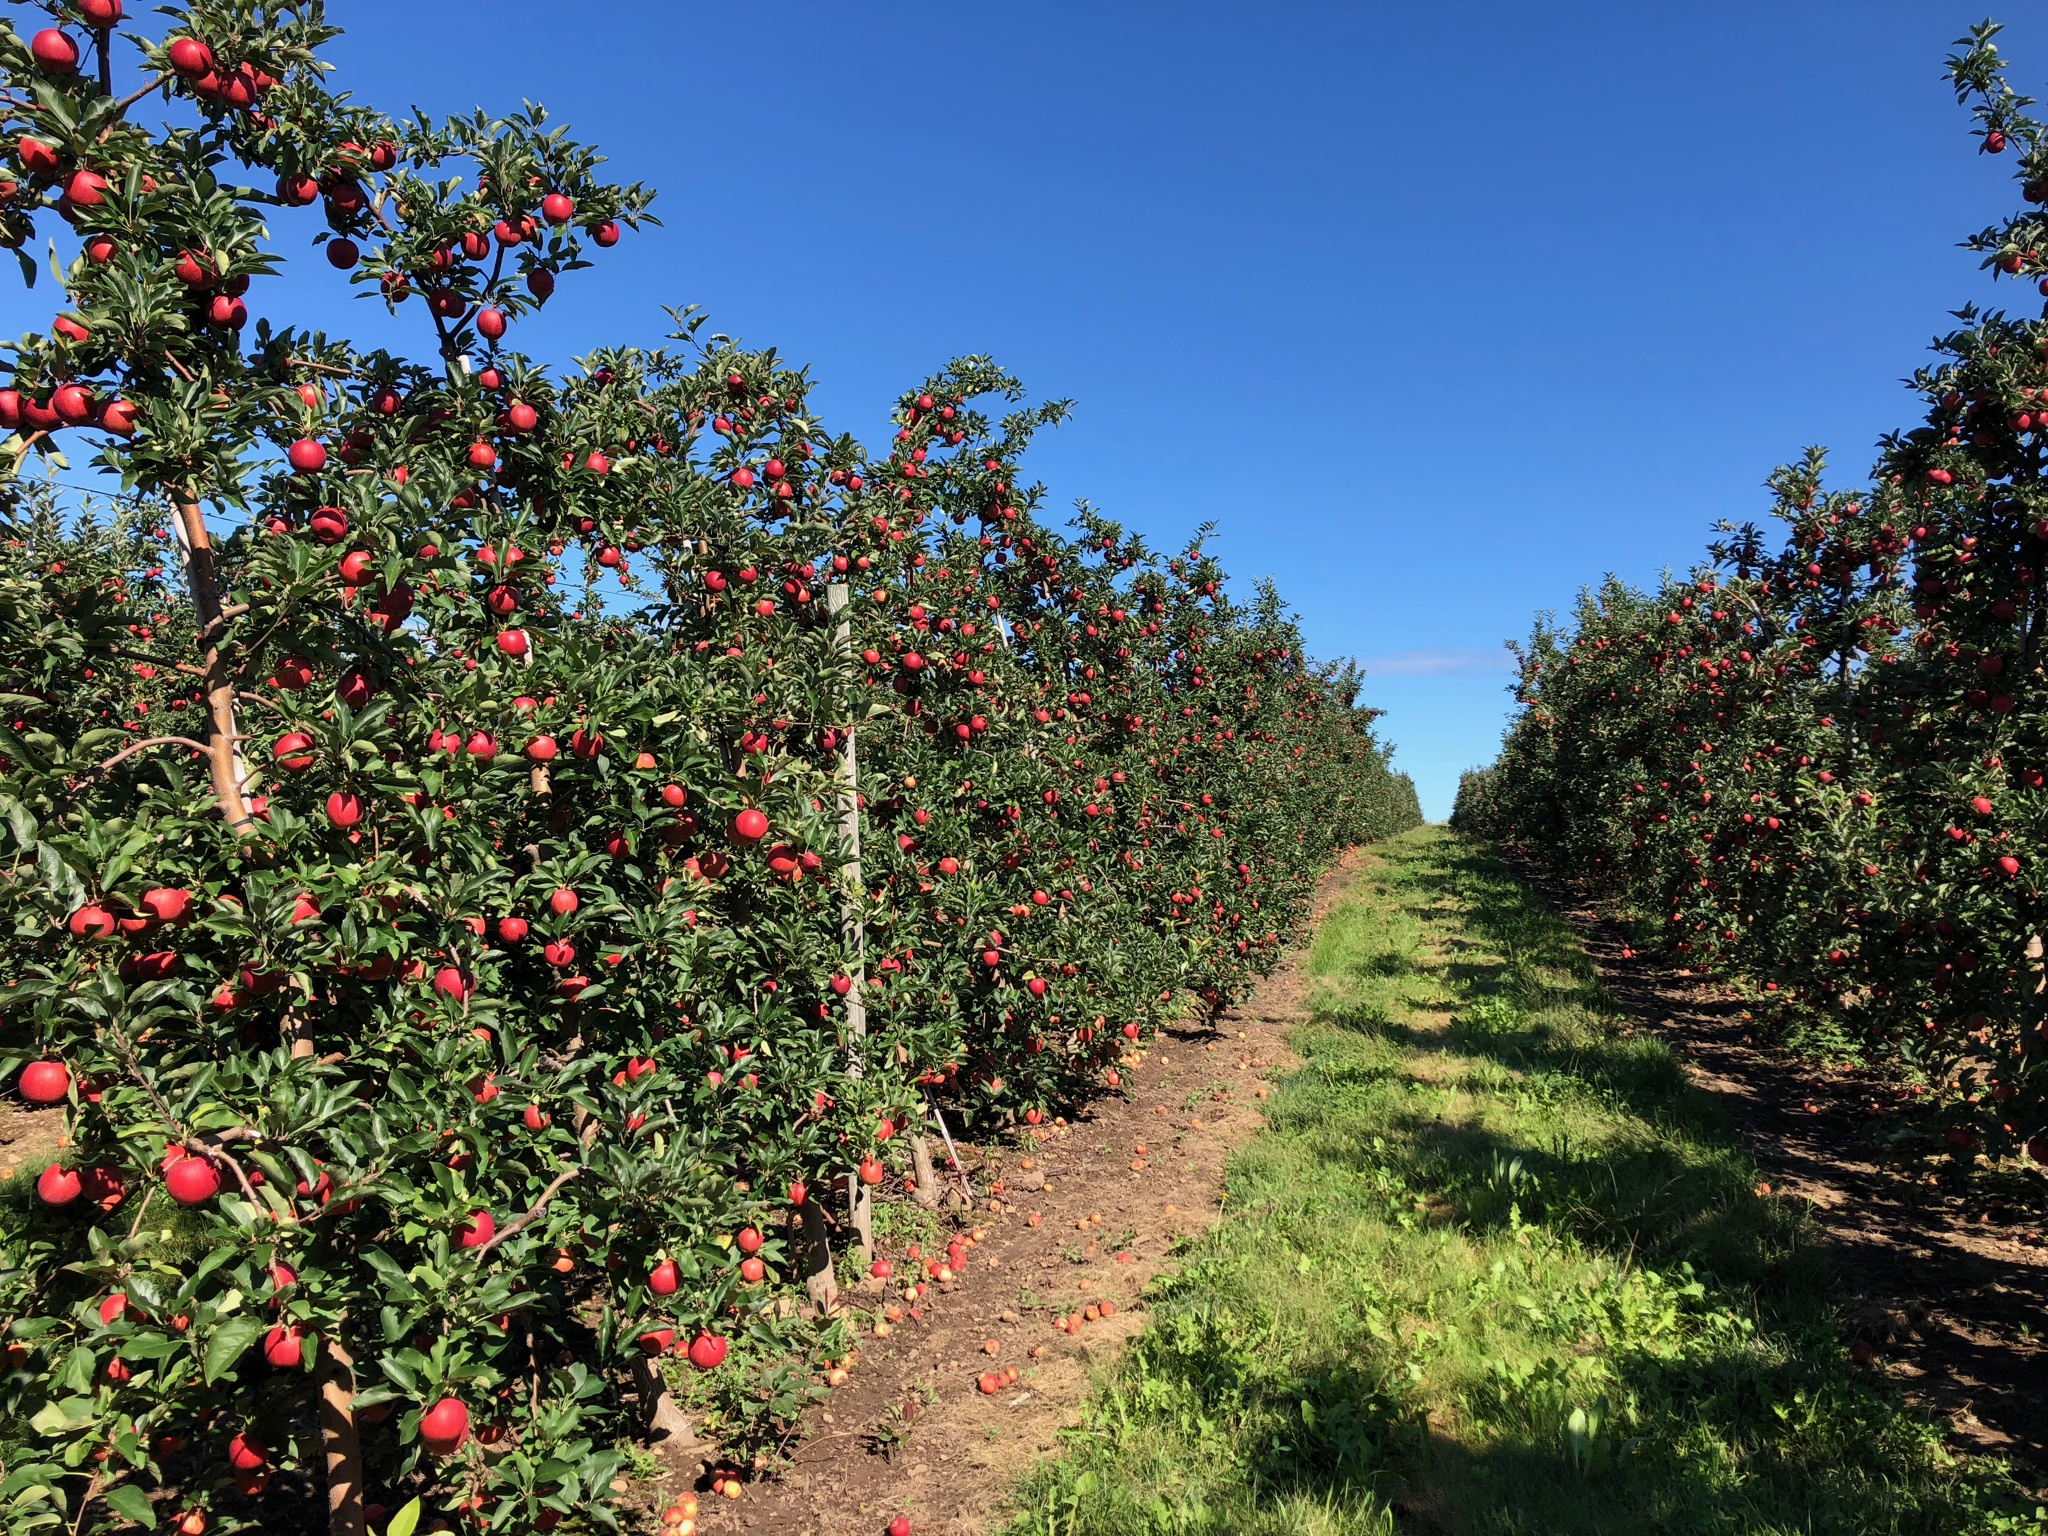 We grow more than 27+ apple varieties here at Abendroth's Apple Ridge Orchard